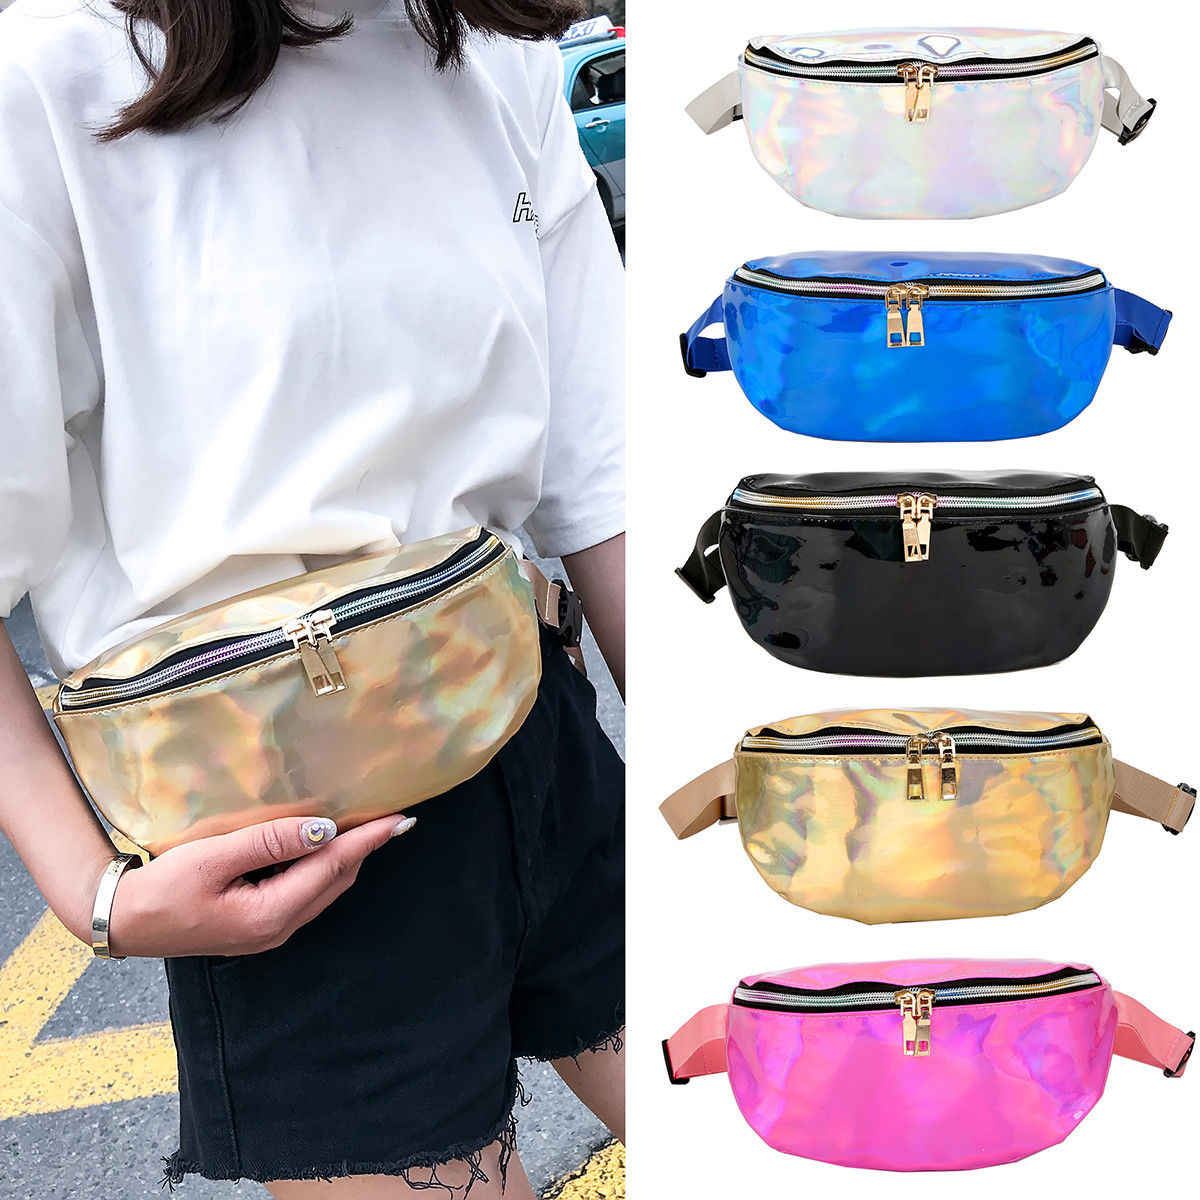 Women Bum Bag Fanny Pack Pouch Travel Waist Festival Money Belt Leather  Holiday Wallet Pouch Hip a95aa99ad8